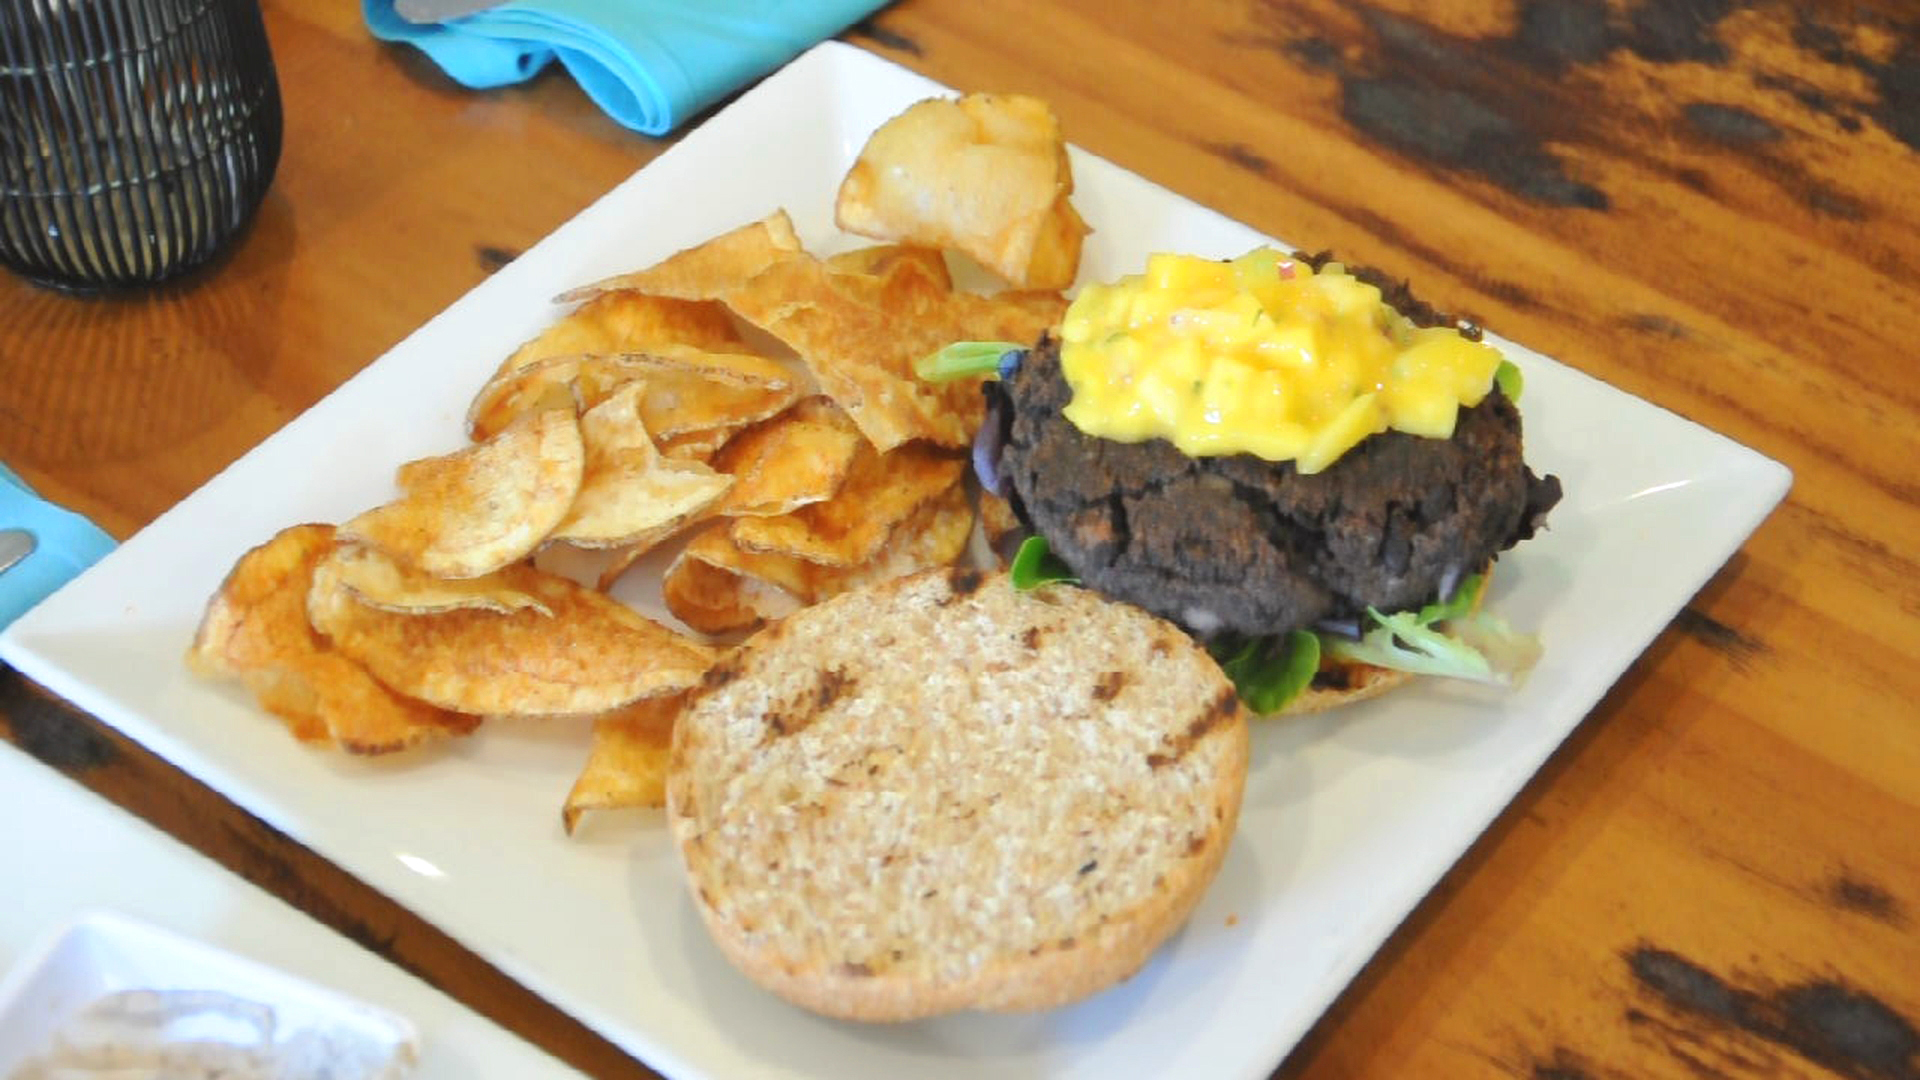 Vegan black bean burger with mixed greens,mango salsa, and a side of chips